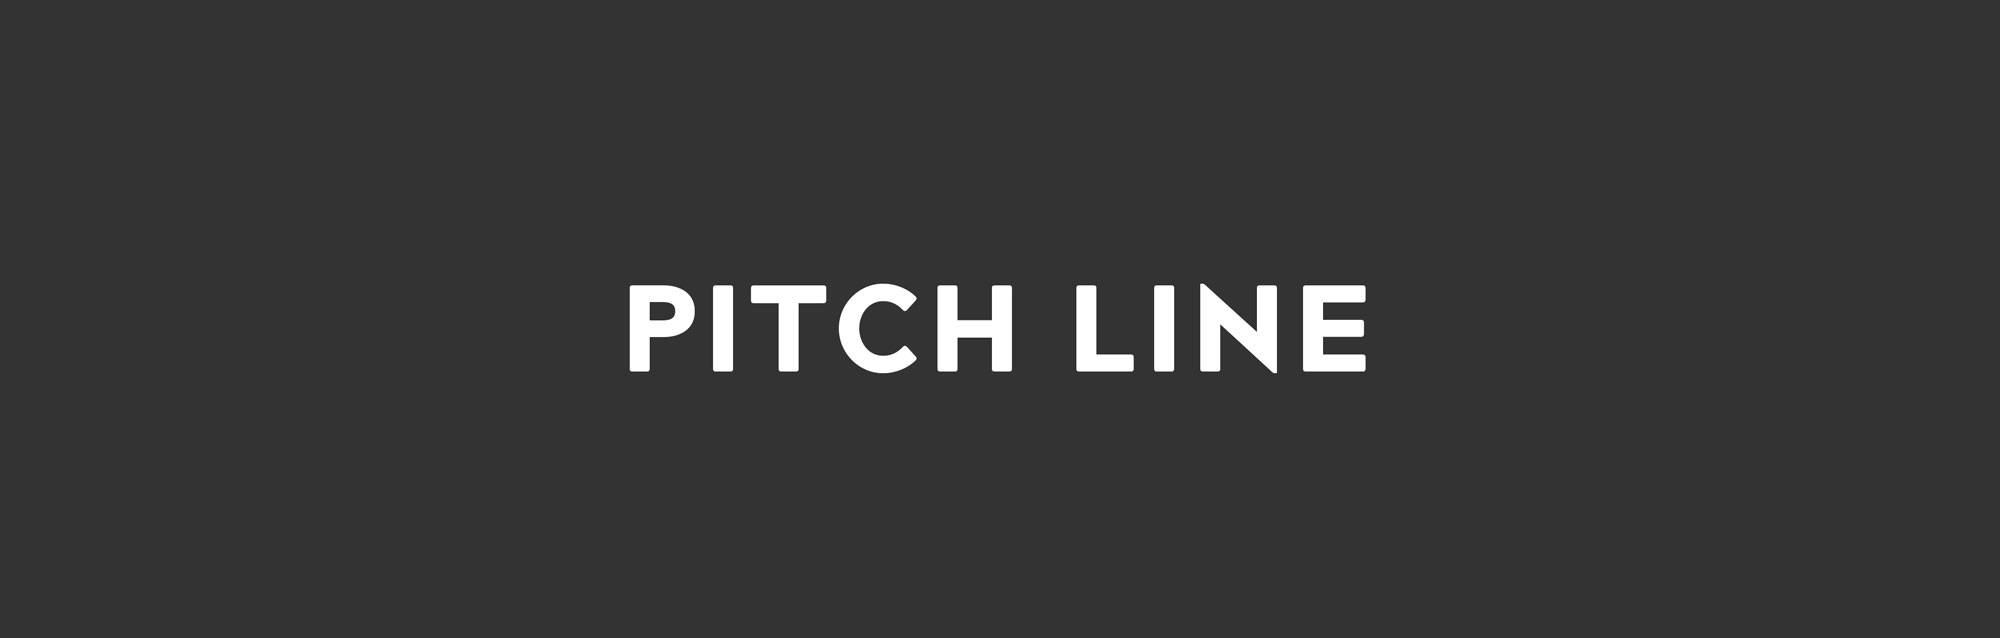 Ambassador resources pitch line